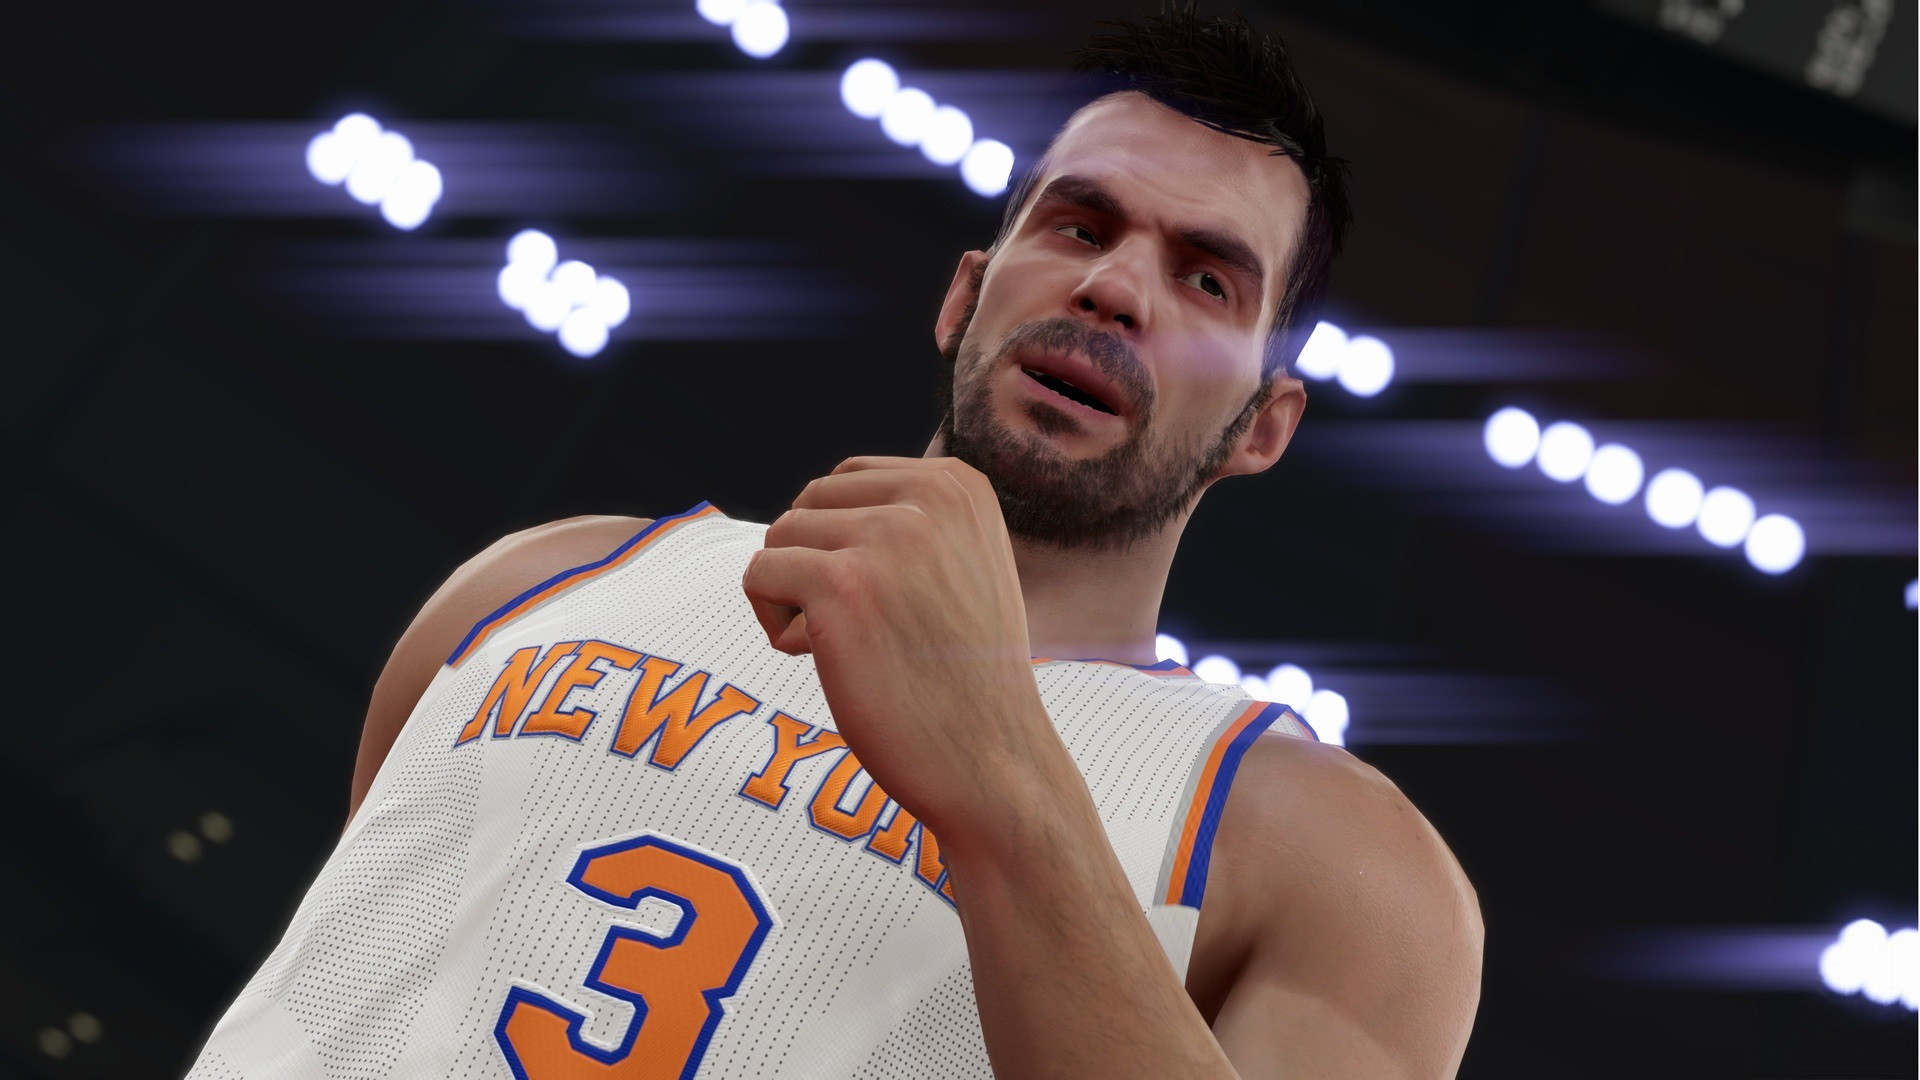 Play your best game of NBA 2K15 with the New York Knicks!